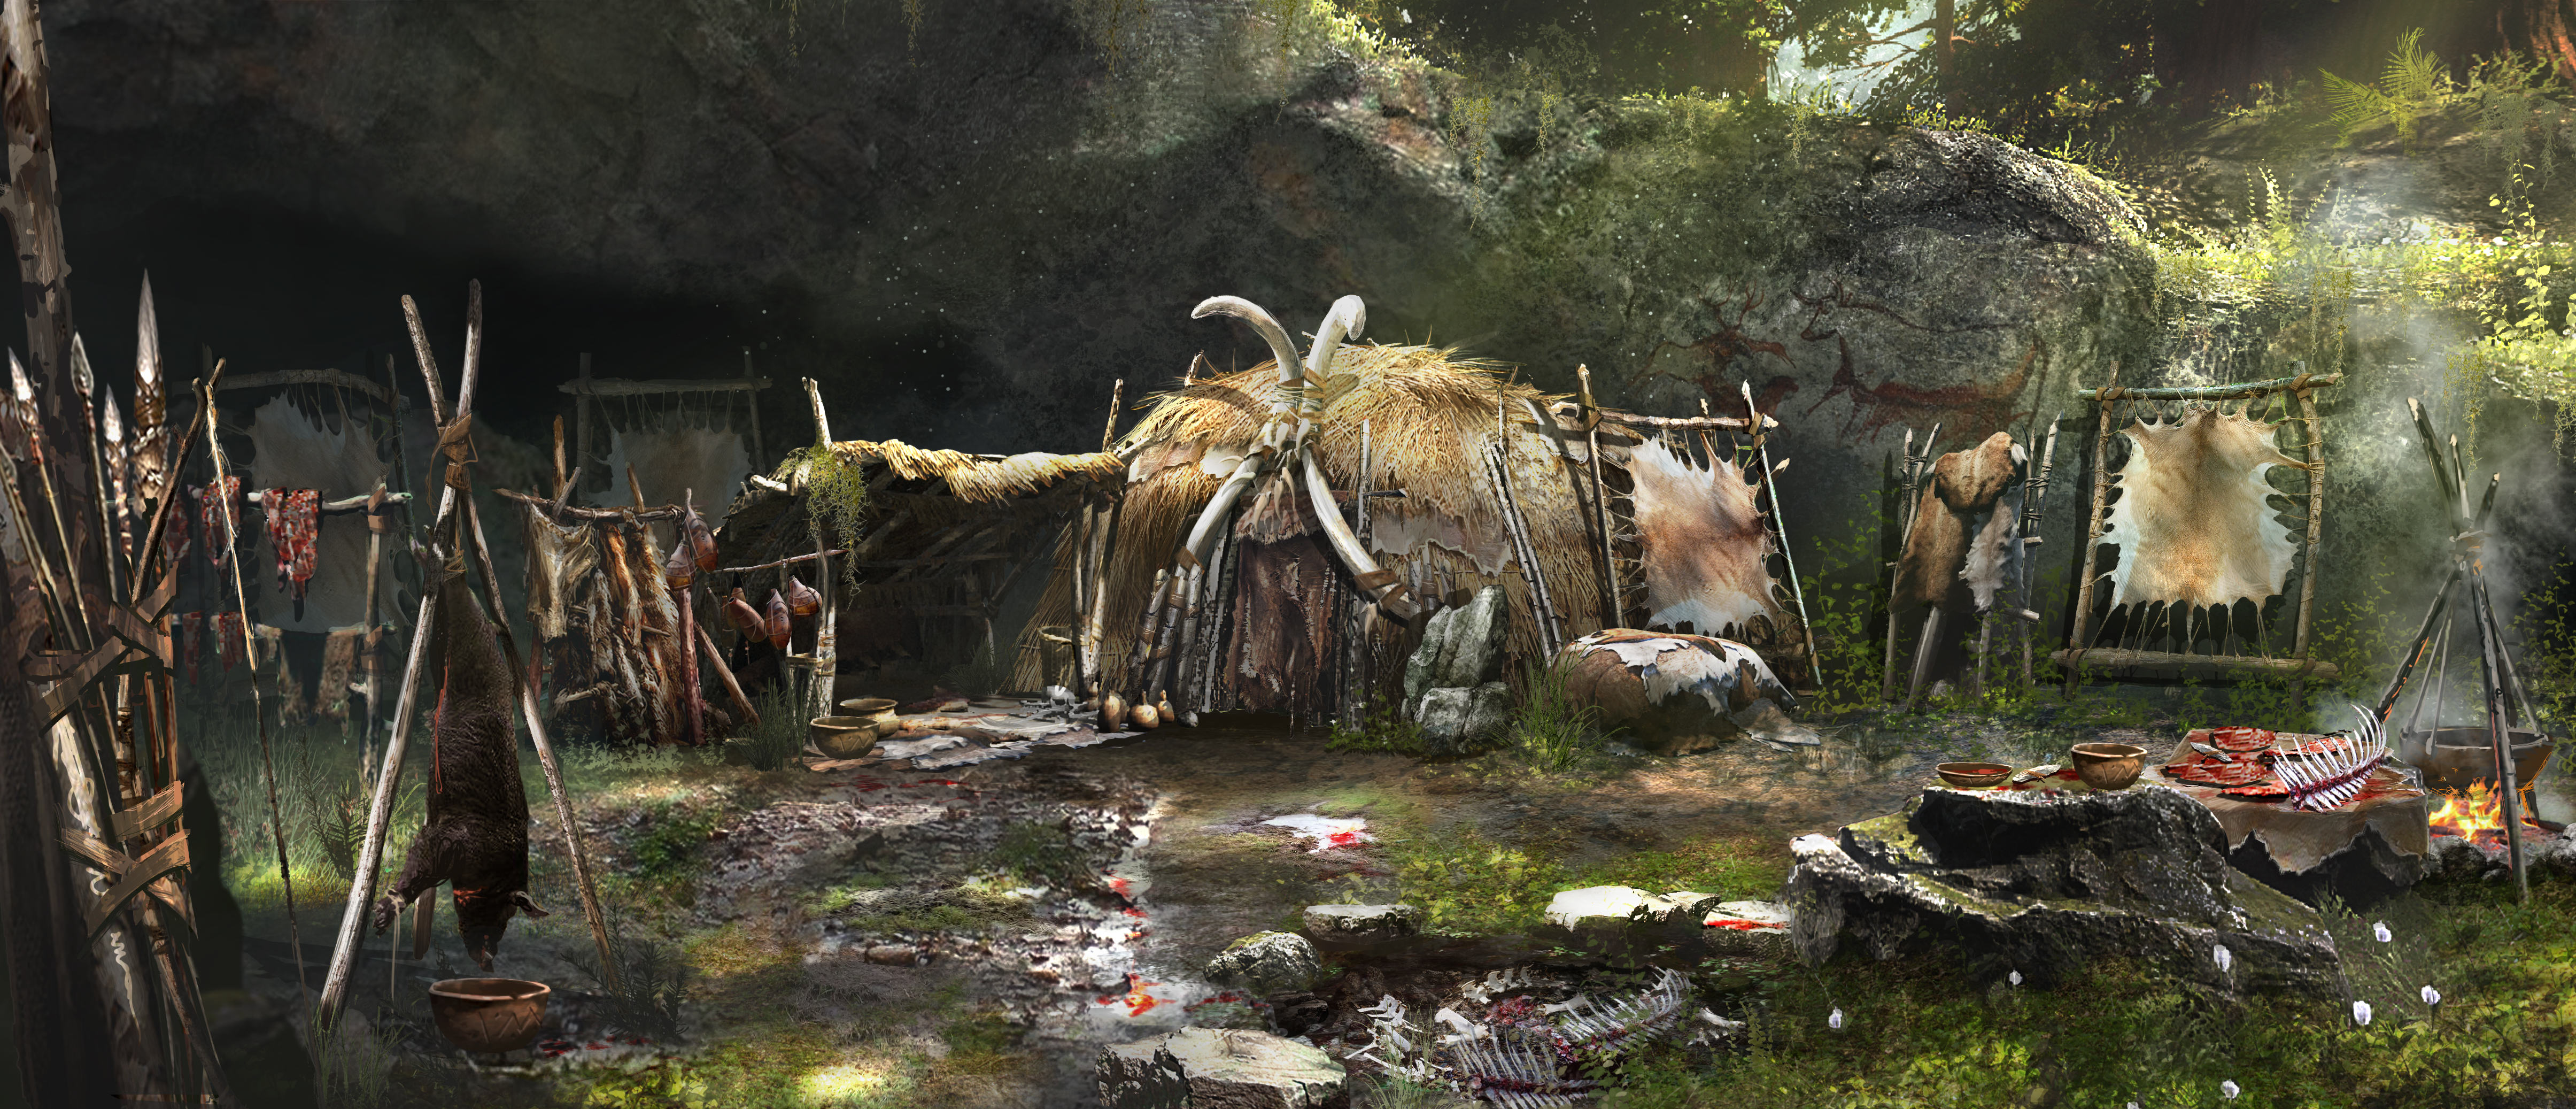 An Exclusive Look At Far Cry Primal Ahead Of Release Day FCP 01 CONCEPT WENJA VILLAGE HUNTER HUT PREVIEW PR 160126 6pm CET 1453716175